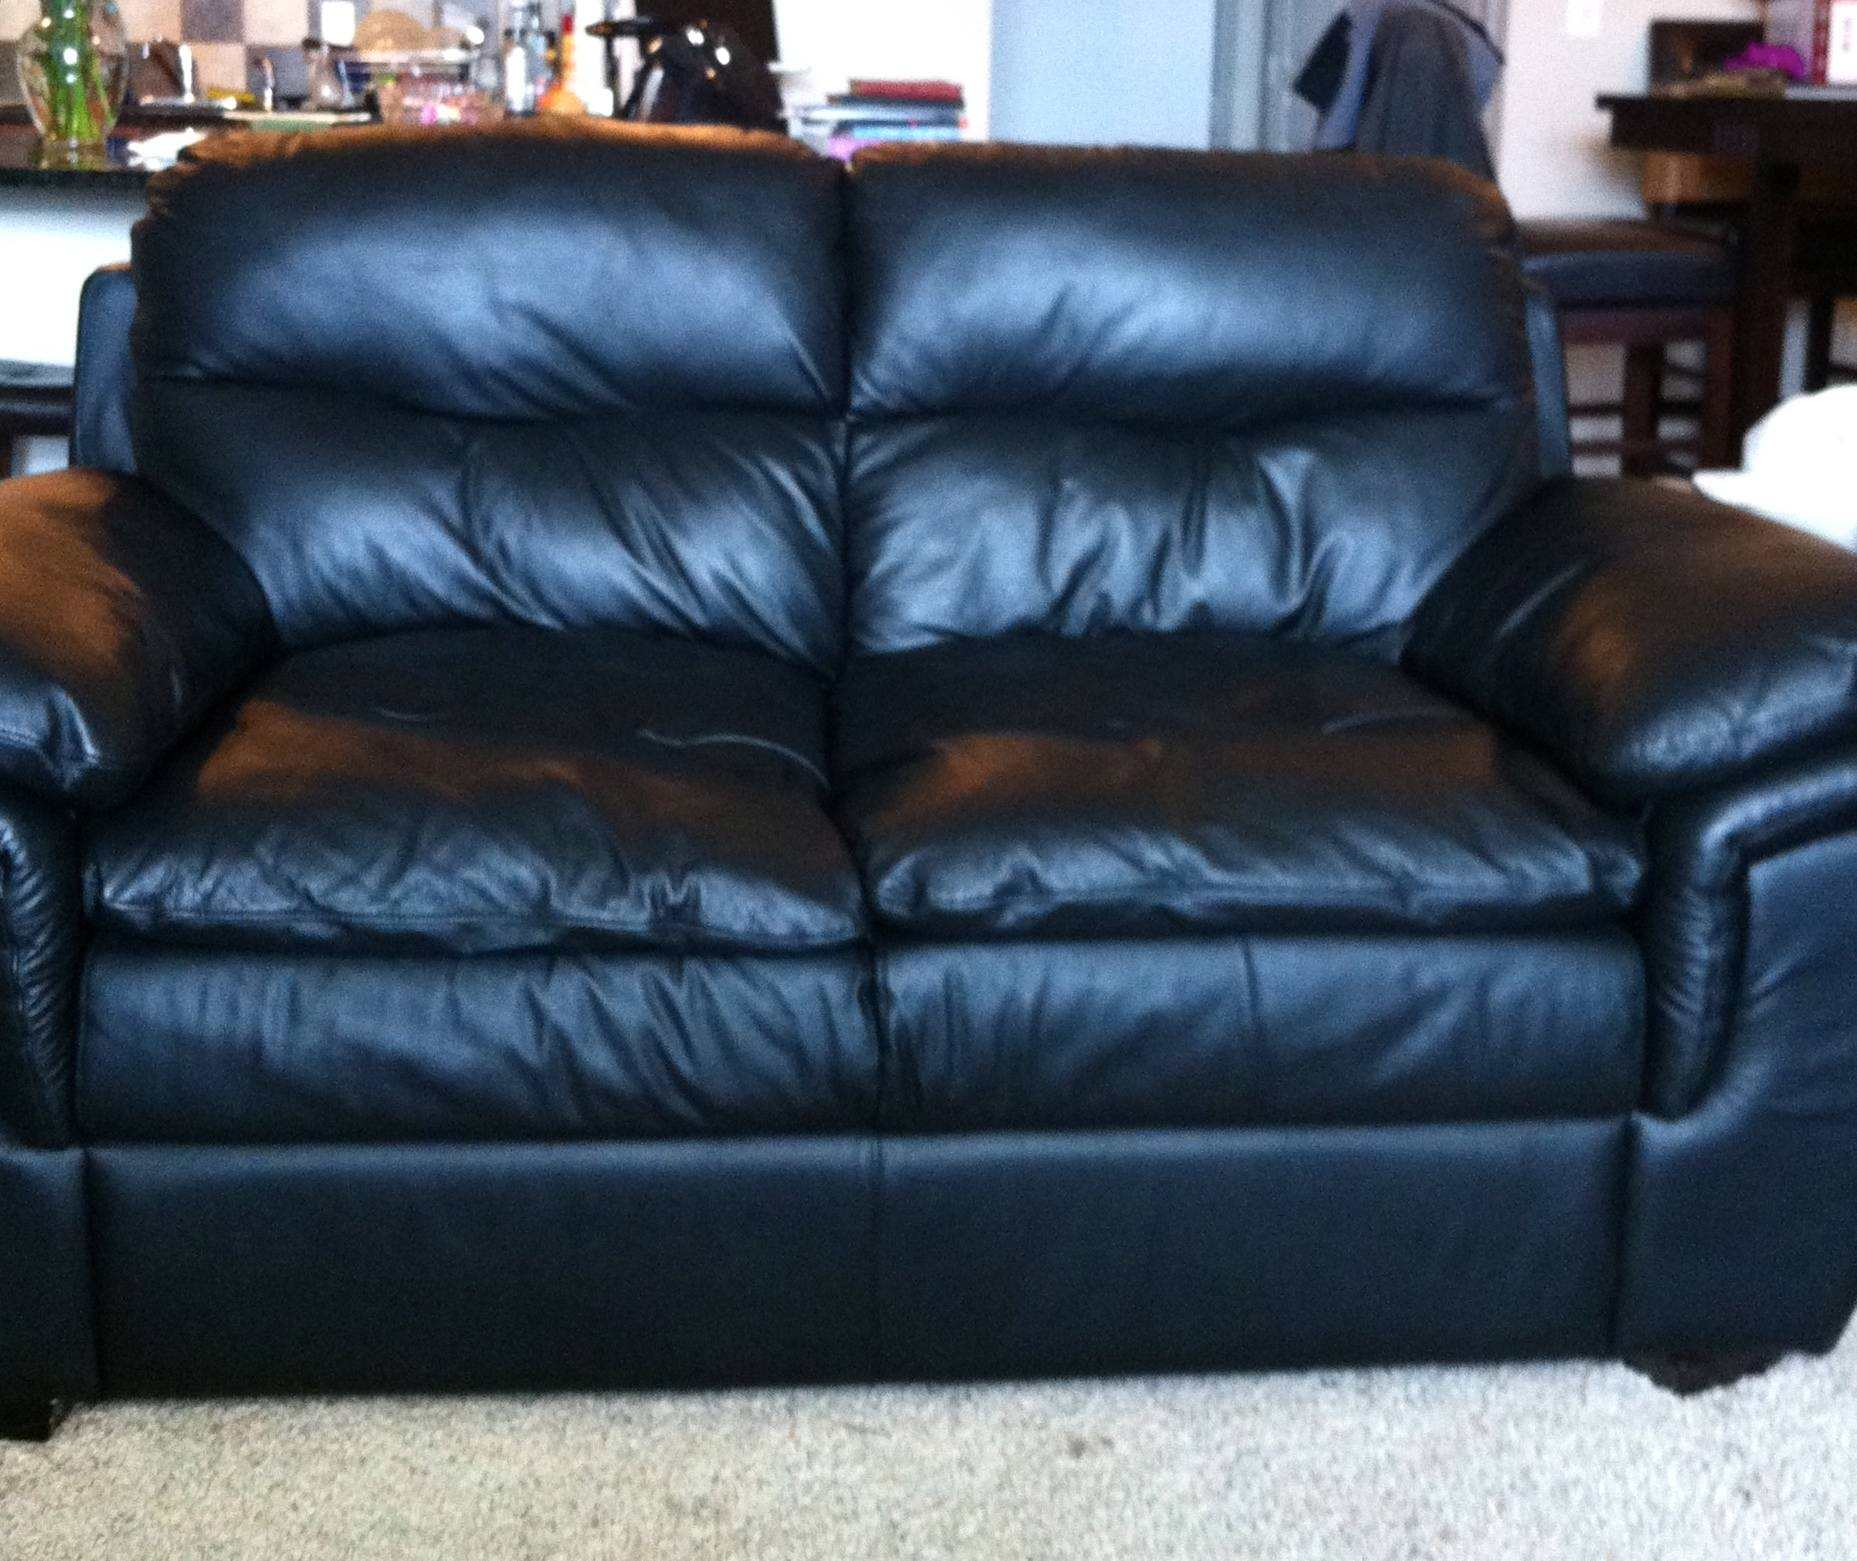 Leather | Stuff For Sale regarding Black Leather Sofas and Loveseats (Image 12 of 15)